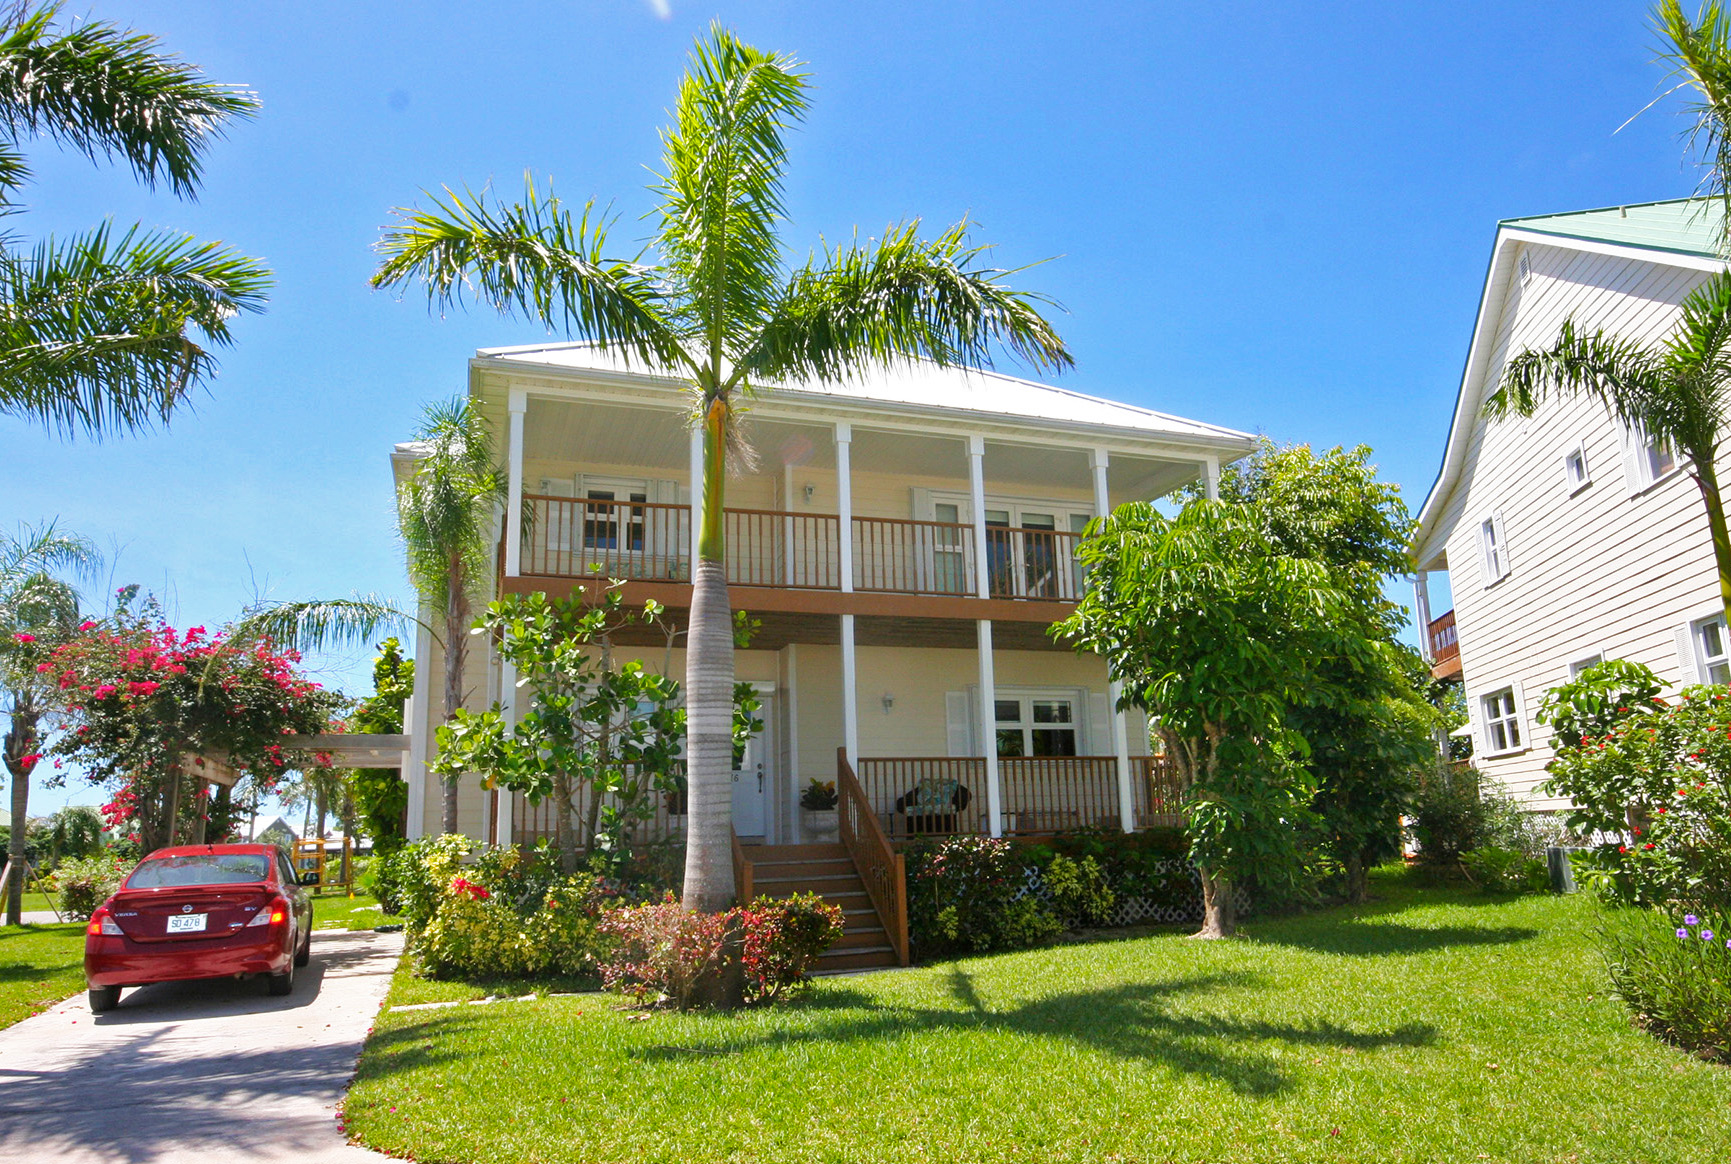 Single Family Home for Rent at Superbly Customized Home in Shoreline! Fortune Beach, Grand Bahama, Bahamas